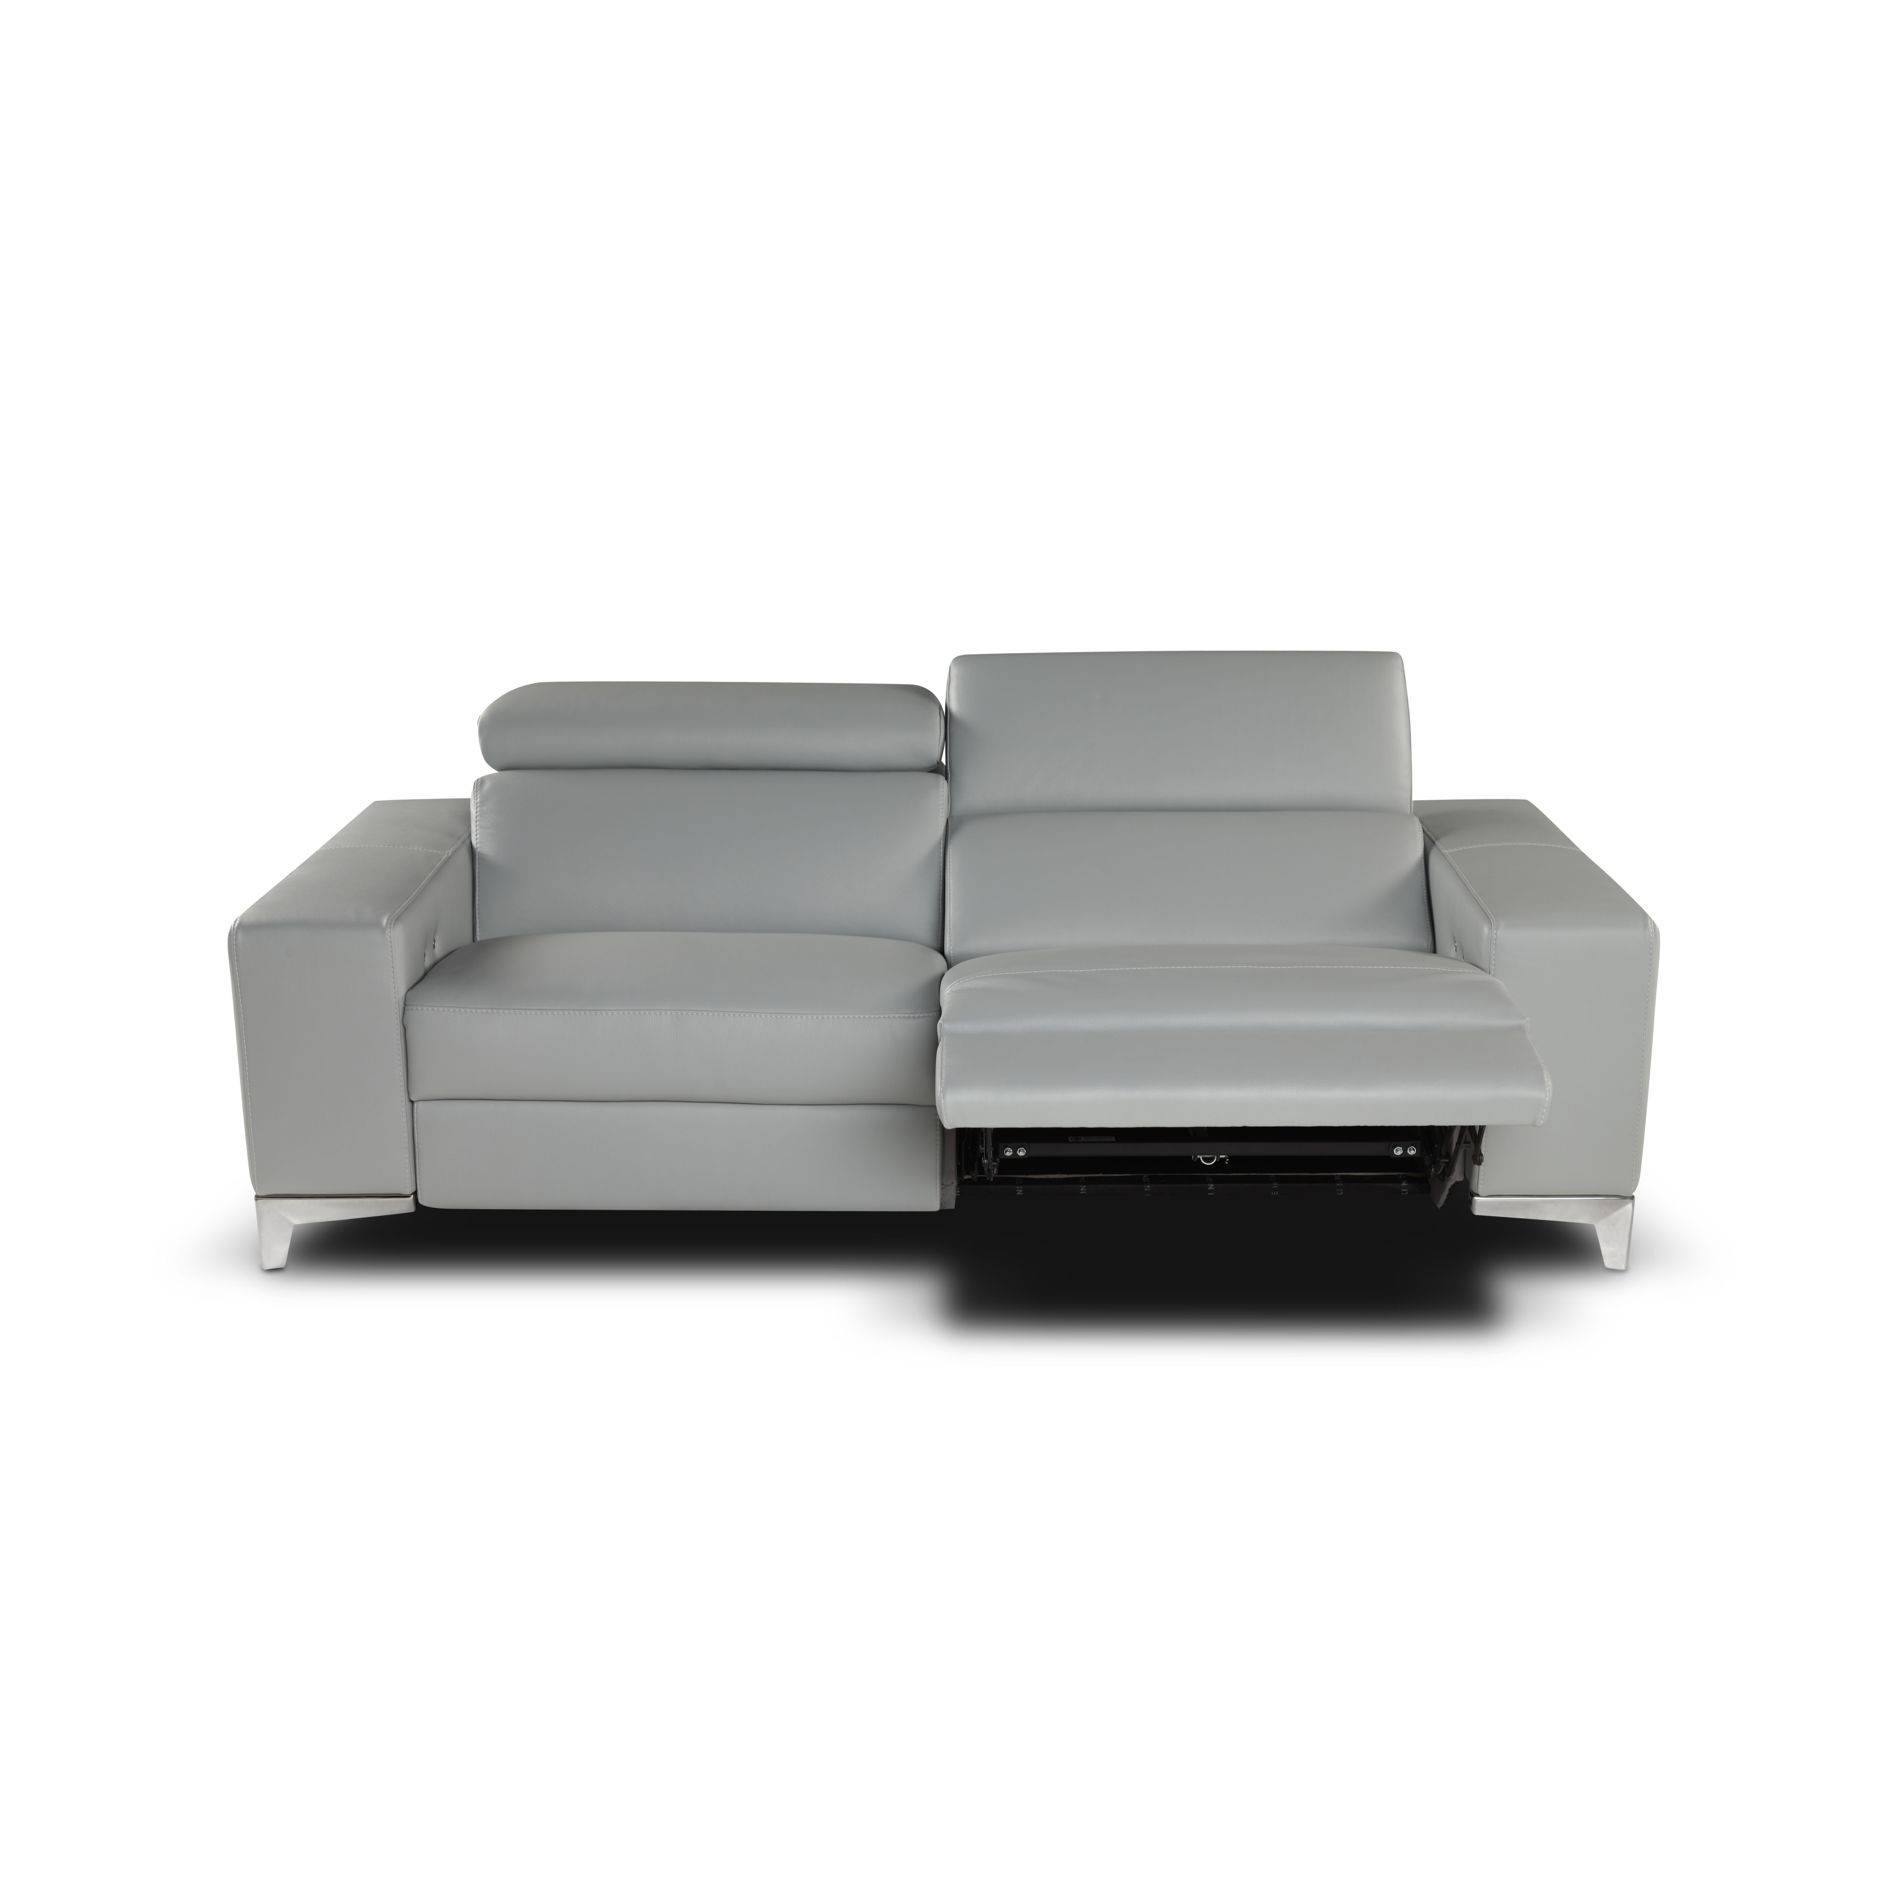 Queen Leather Sofa Set | Giuseppe&giuseppe within Italian Recliner Sofas (Image 12 of 15)